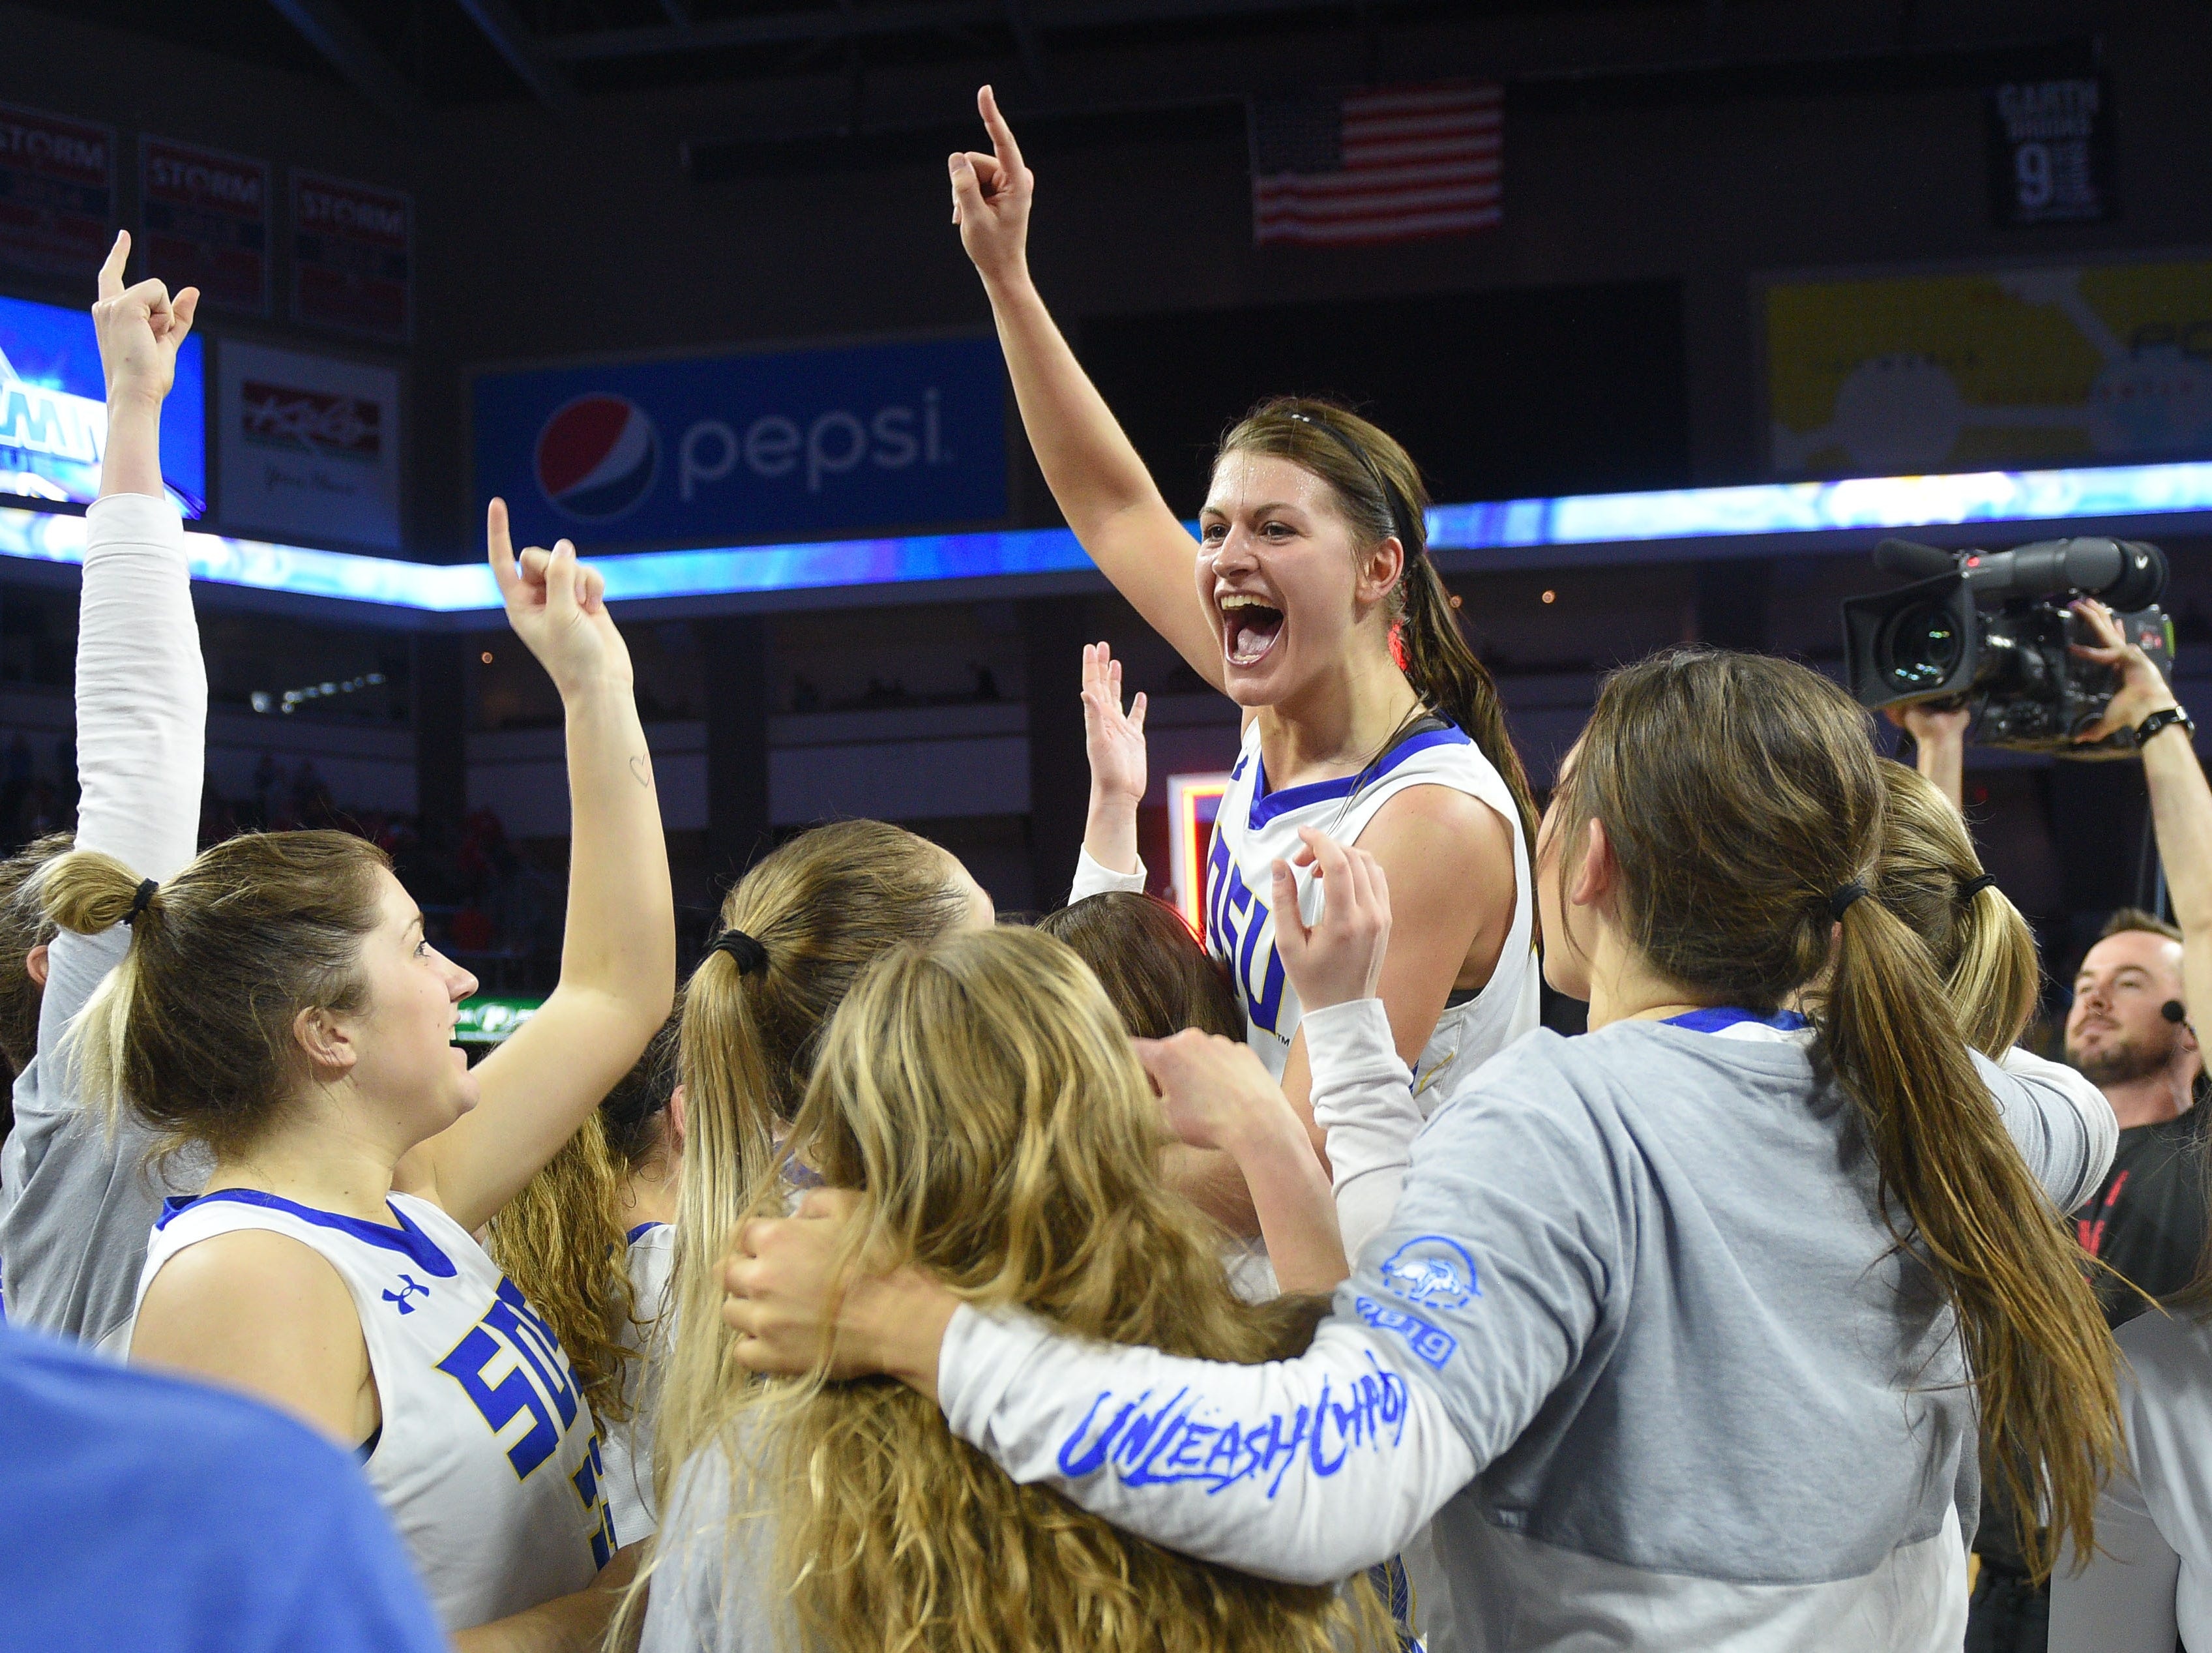 SDSU's Macy Miller is lifted up by her teammates after their win against USD Tuesday, March 12, in the Summit League women's championship at the Denny Sanford Premier Center in Sioux Falls. SDSU won 83-71 against USD.